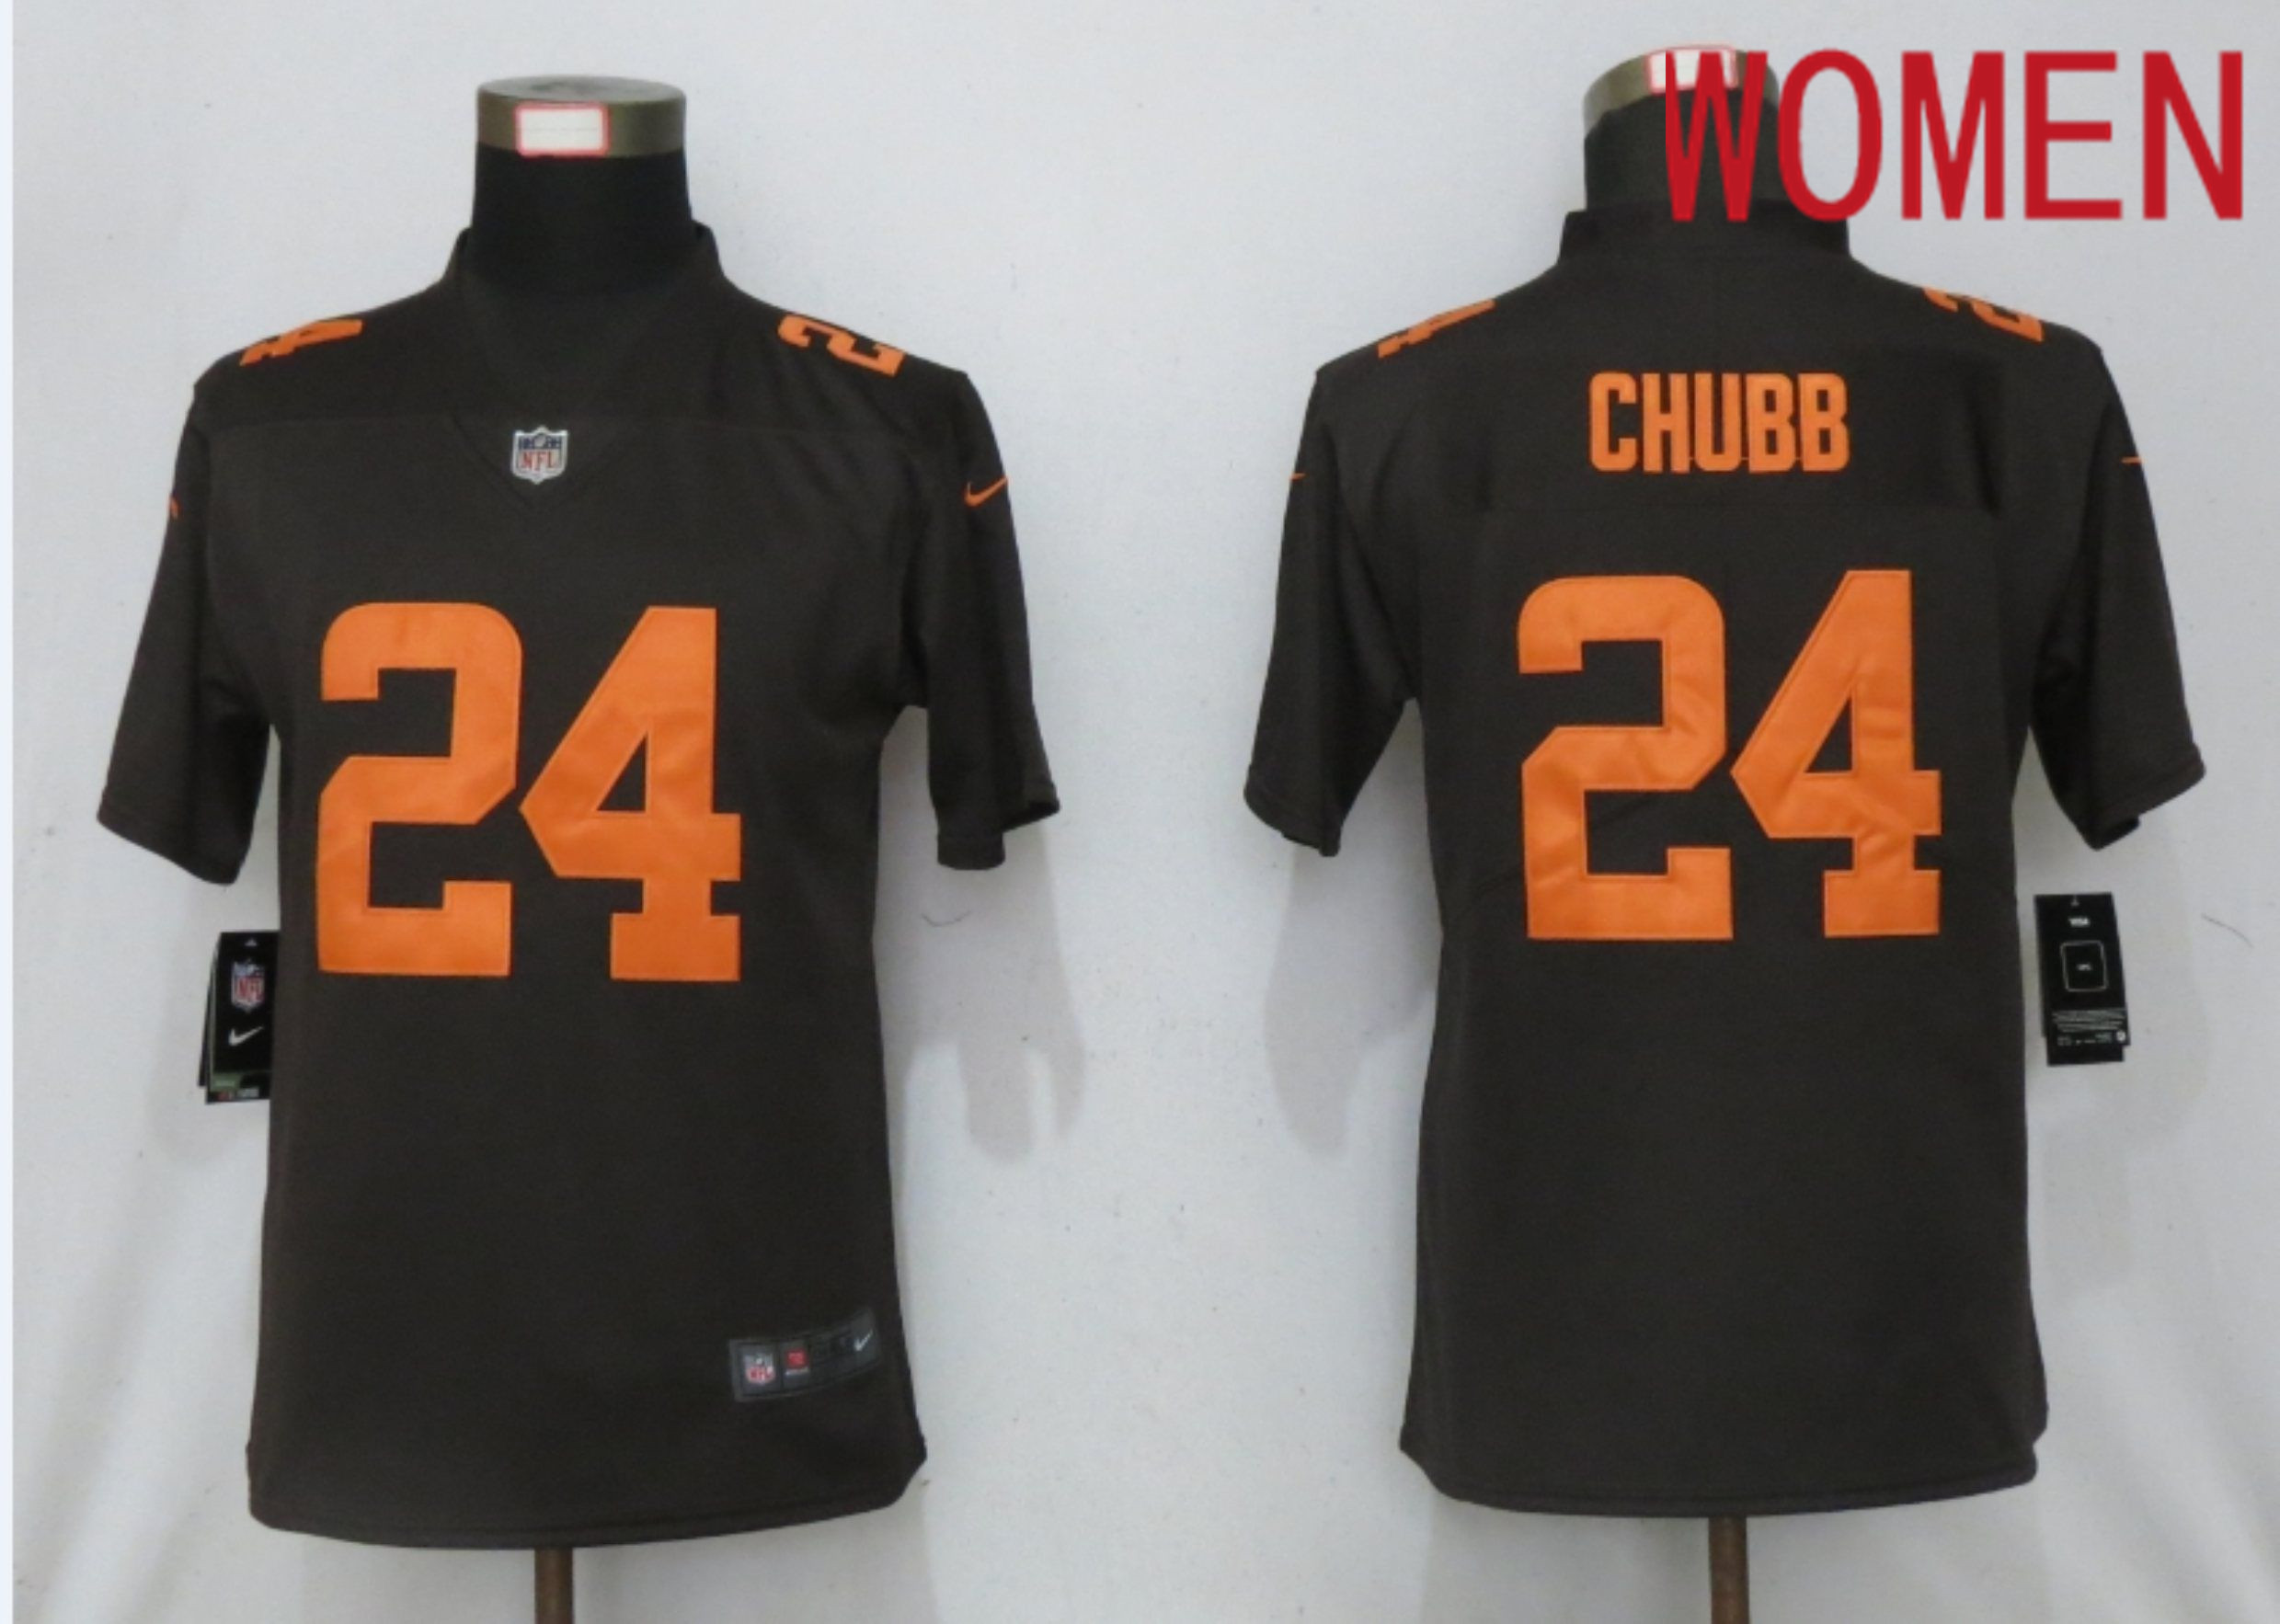 Wholesale Women Cleveland Browns 24 Chubb Brown lternate Vapor Elite Playe Nike NFL Jersey